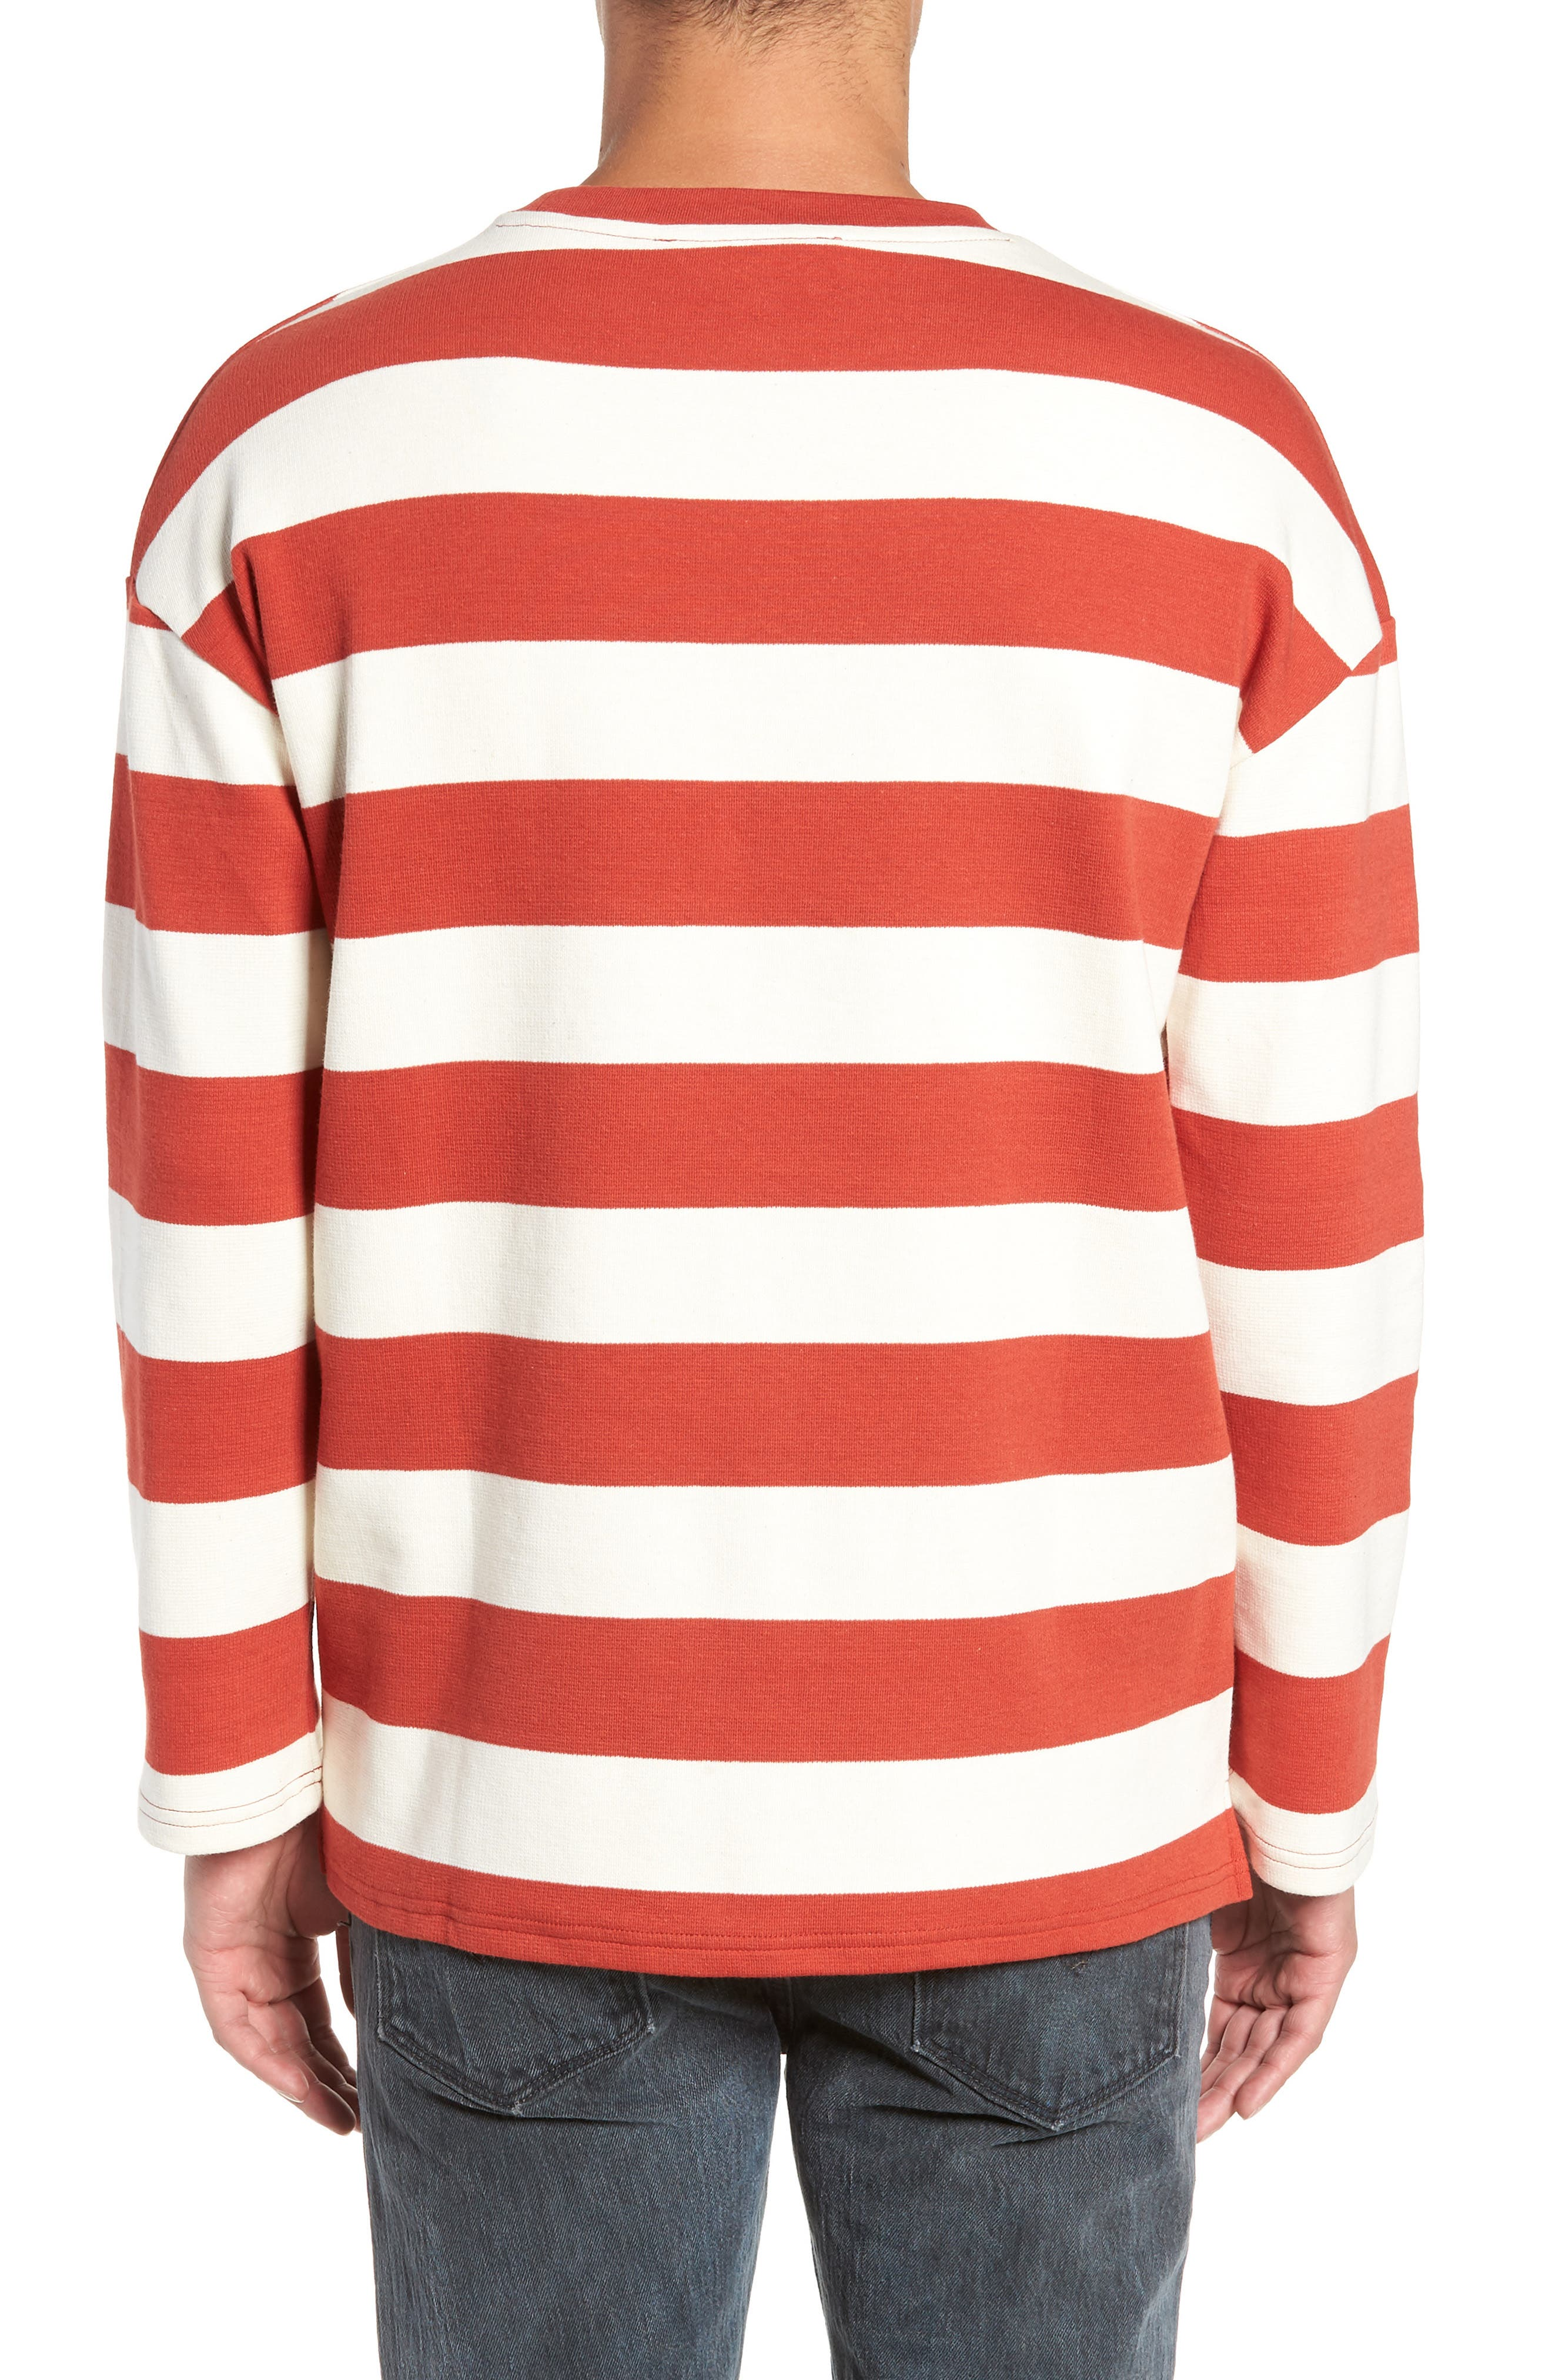 Stripe Crewneck Sweatshirt,                             Alternate thumbnail 2, color,                             ORANGE